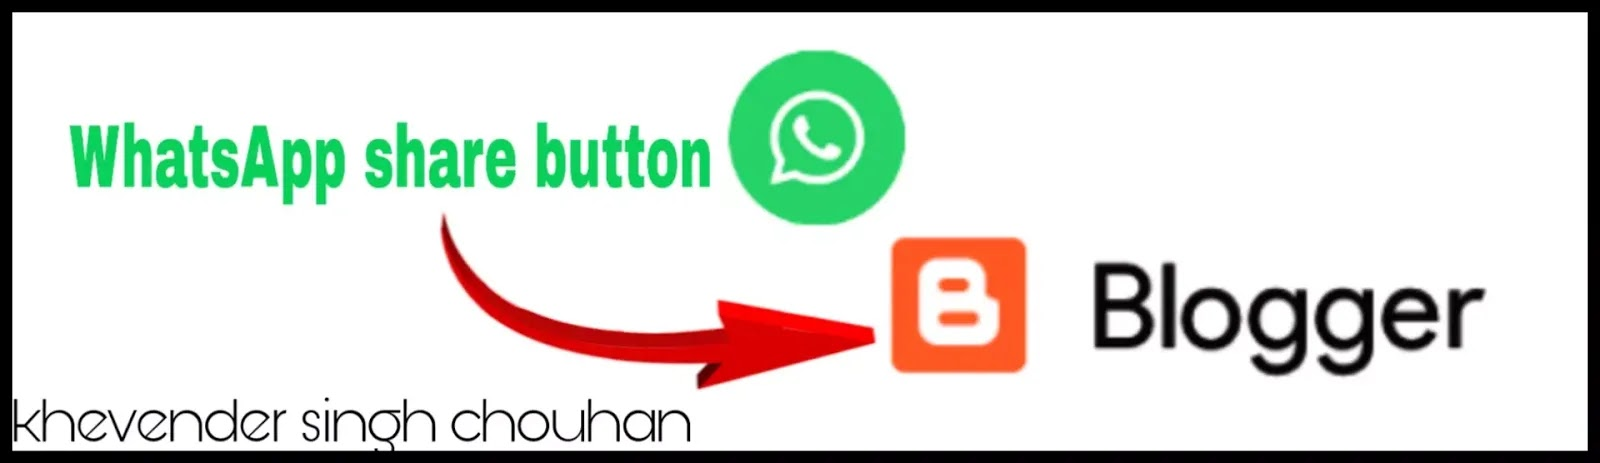 Add-whatsapp-share-button-in-blogger